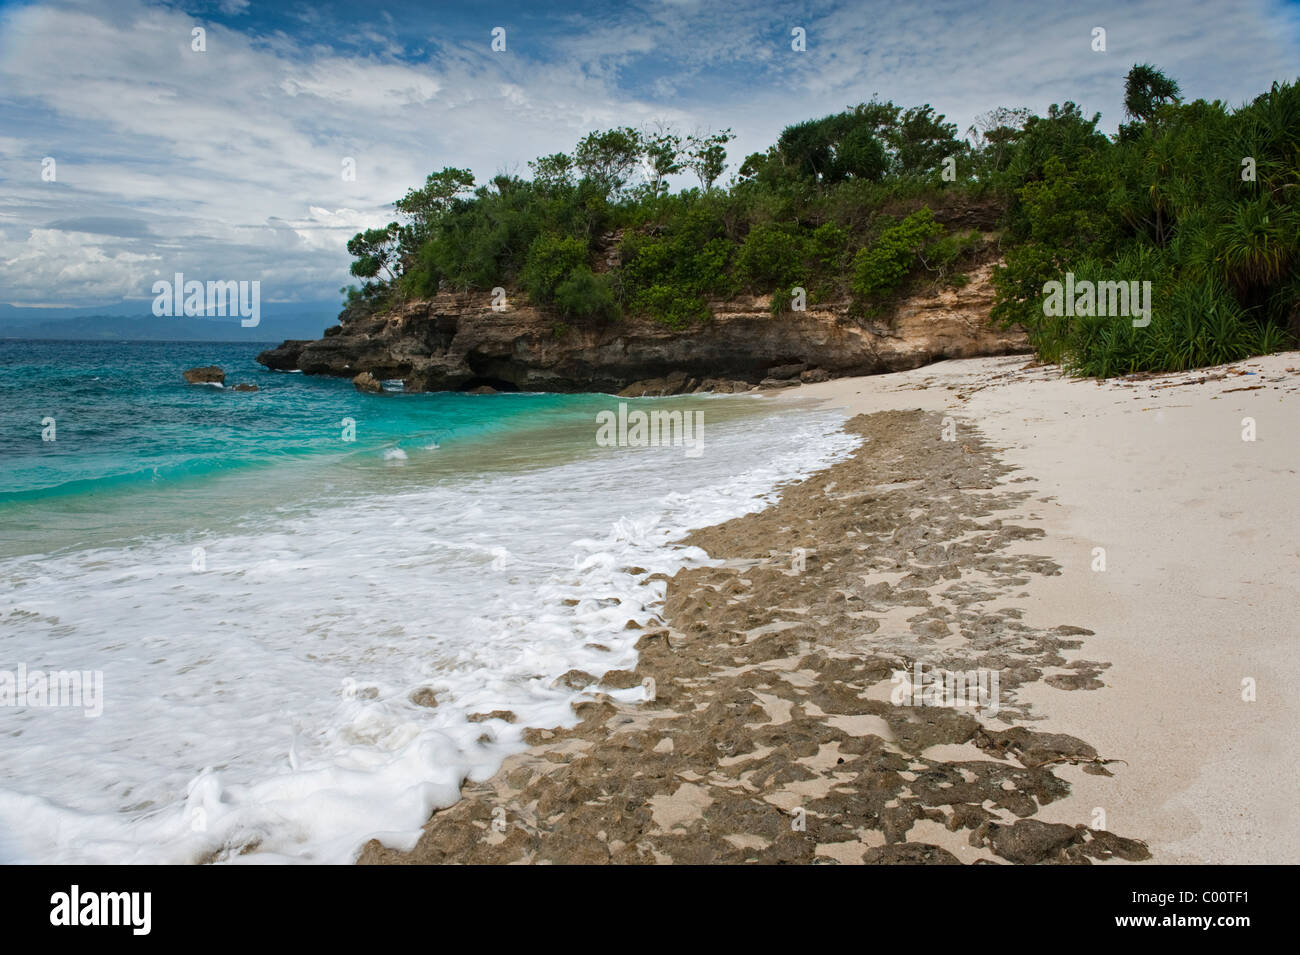 Mushroom Bay is a beautiful secluded white sand beach on Nusa Lembongan, a short distance from mainland Bali, Indonesia. - Stock Image